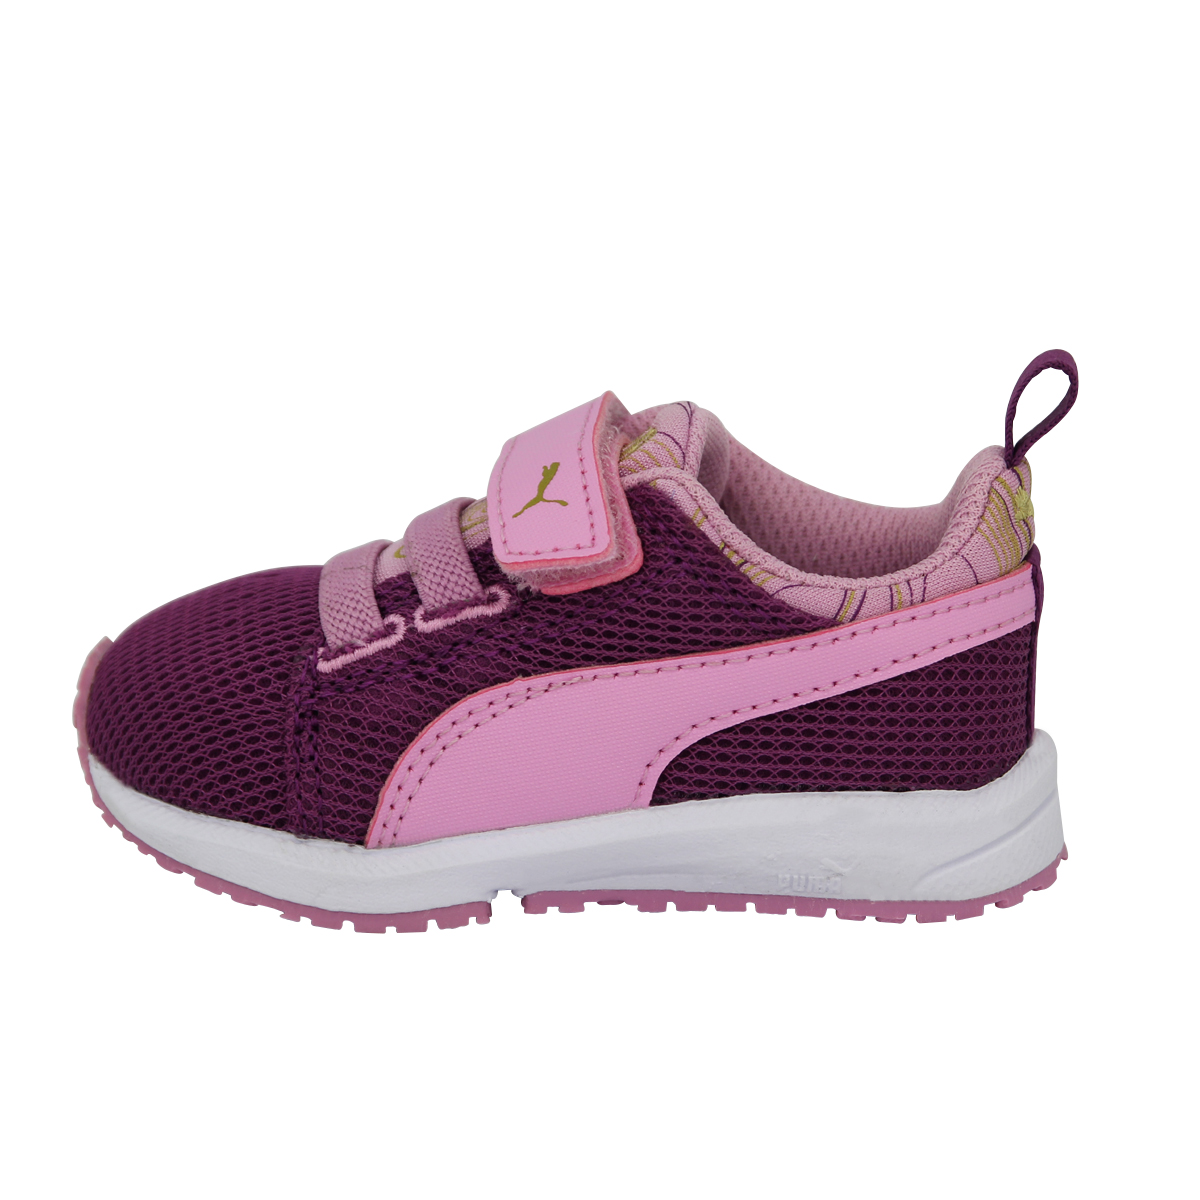 Sneakers Violet Puma Chaussures Marble Inf Carson Enfant Mode CxBeod